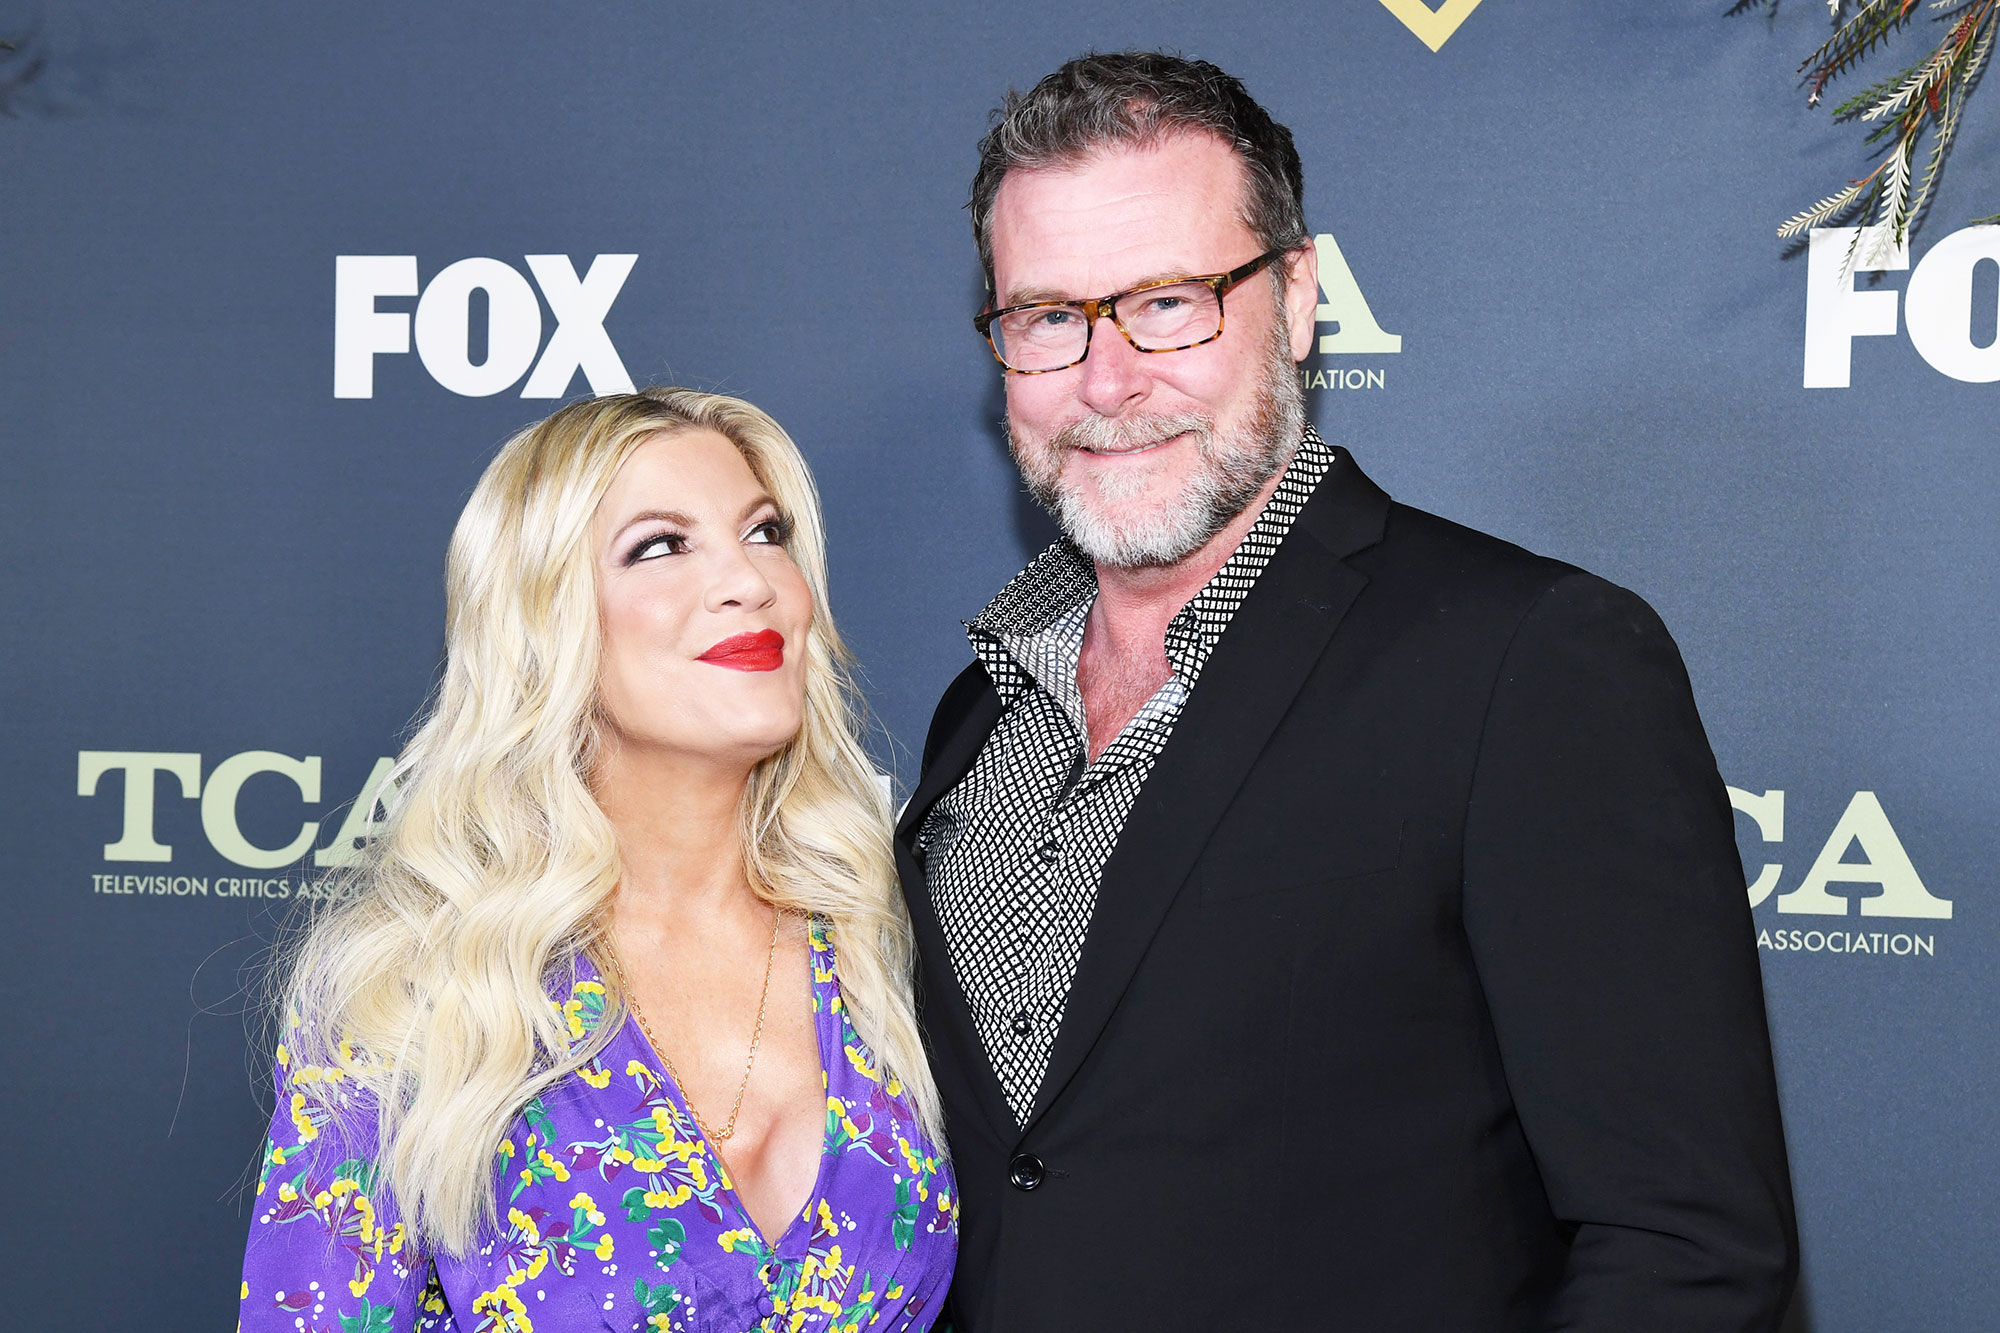 How Tori Spelling, Dean McDermott Keep Their Romance Alive: I Have to Touch Her Butt Every Day. - Tori Spelling and Dean McDermott attend Fox Winter TCA at The Fig House on February 06, 2019 in Los Angeles, California.